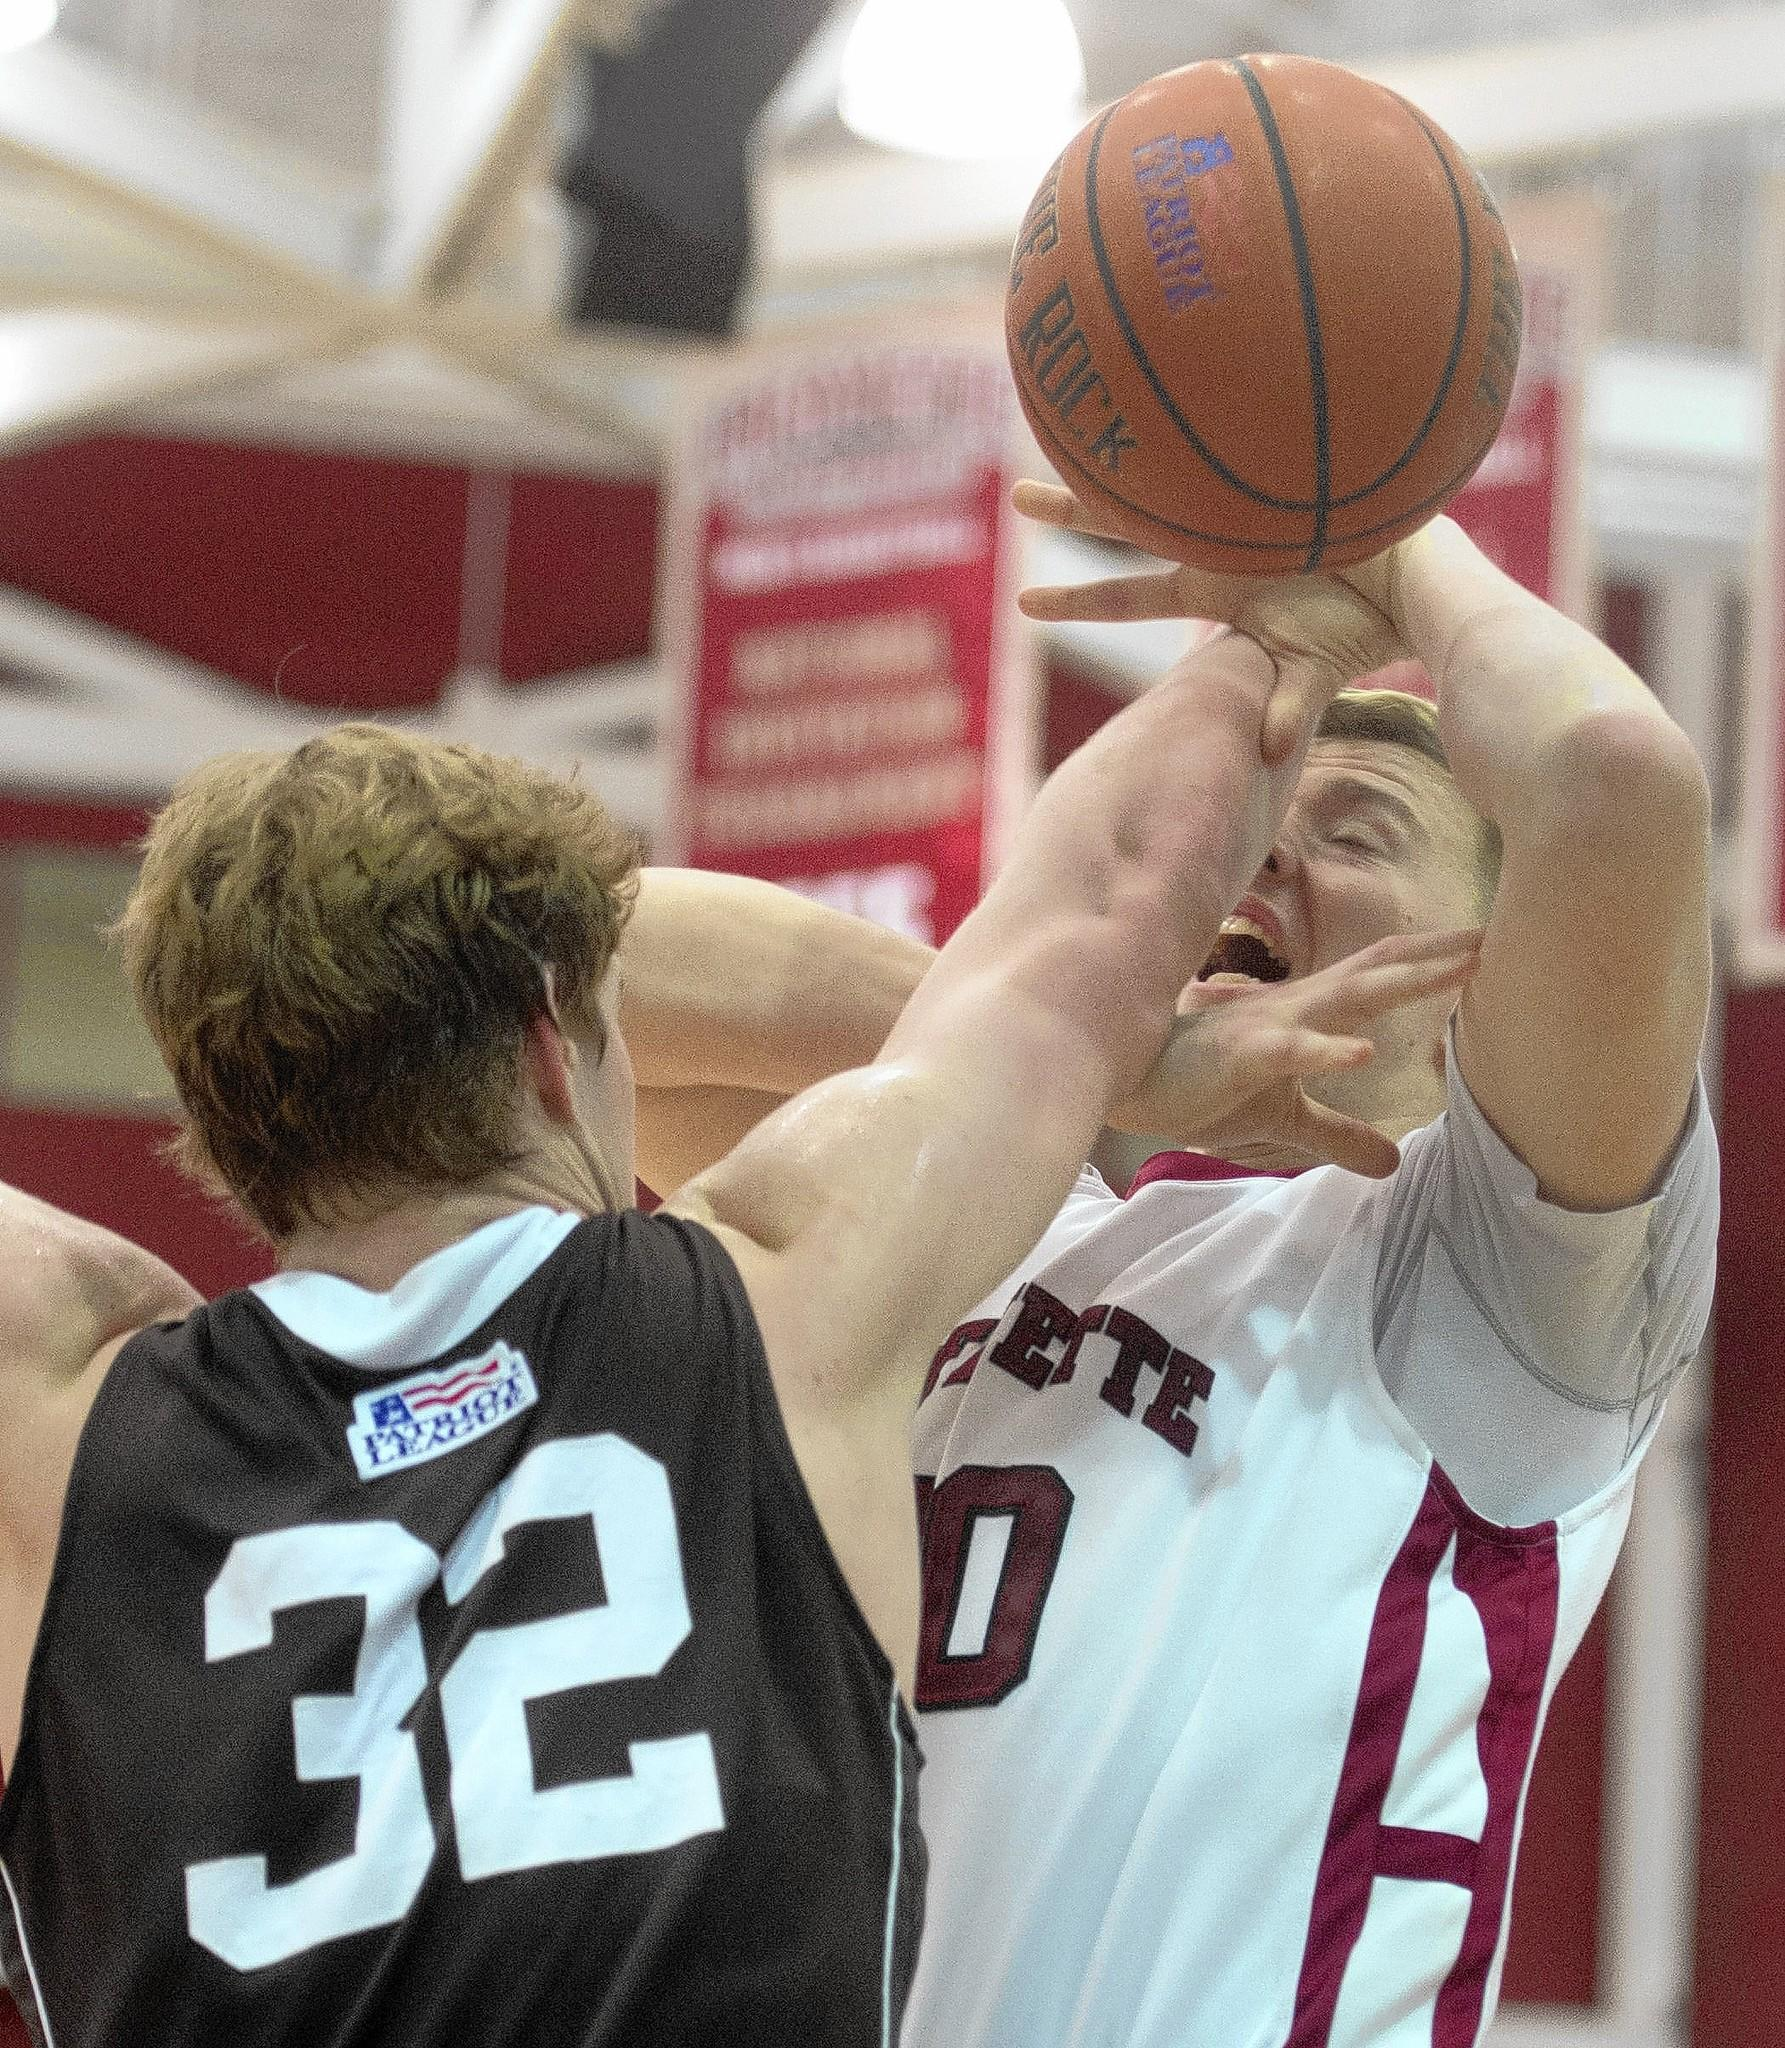 Lafayette's Dan Trist (right) and Lehigh's Tim Kempton get tangled at Lafayette College in Easton on Sunday. The Leopards won 77-71.